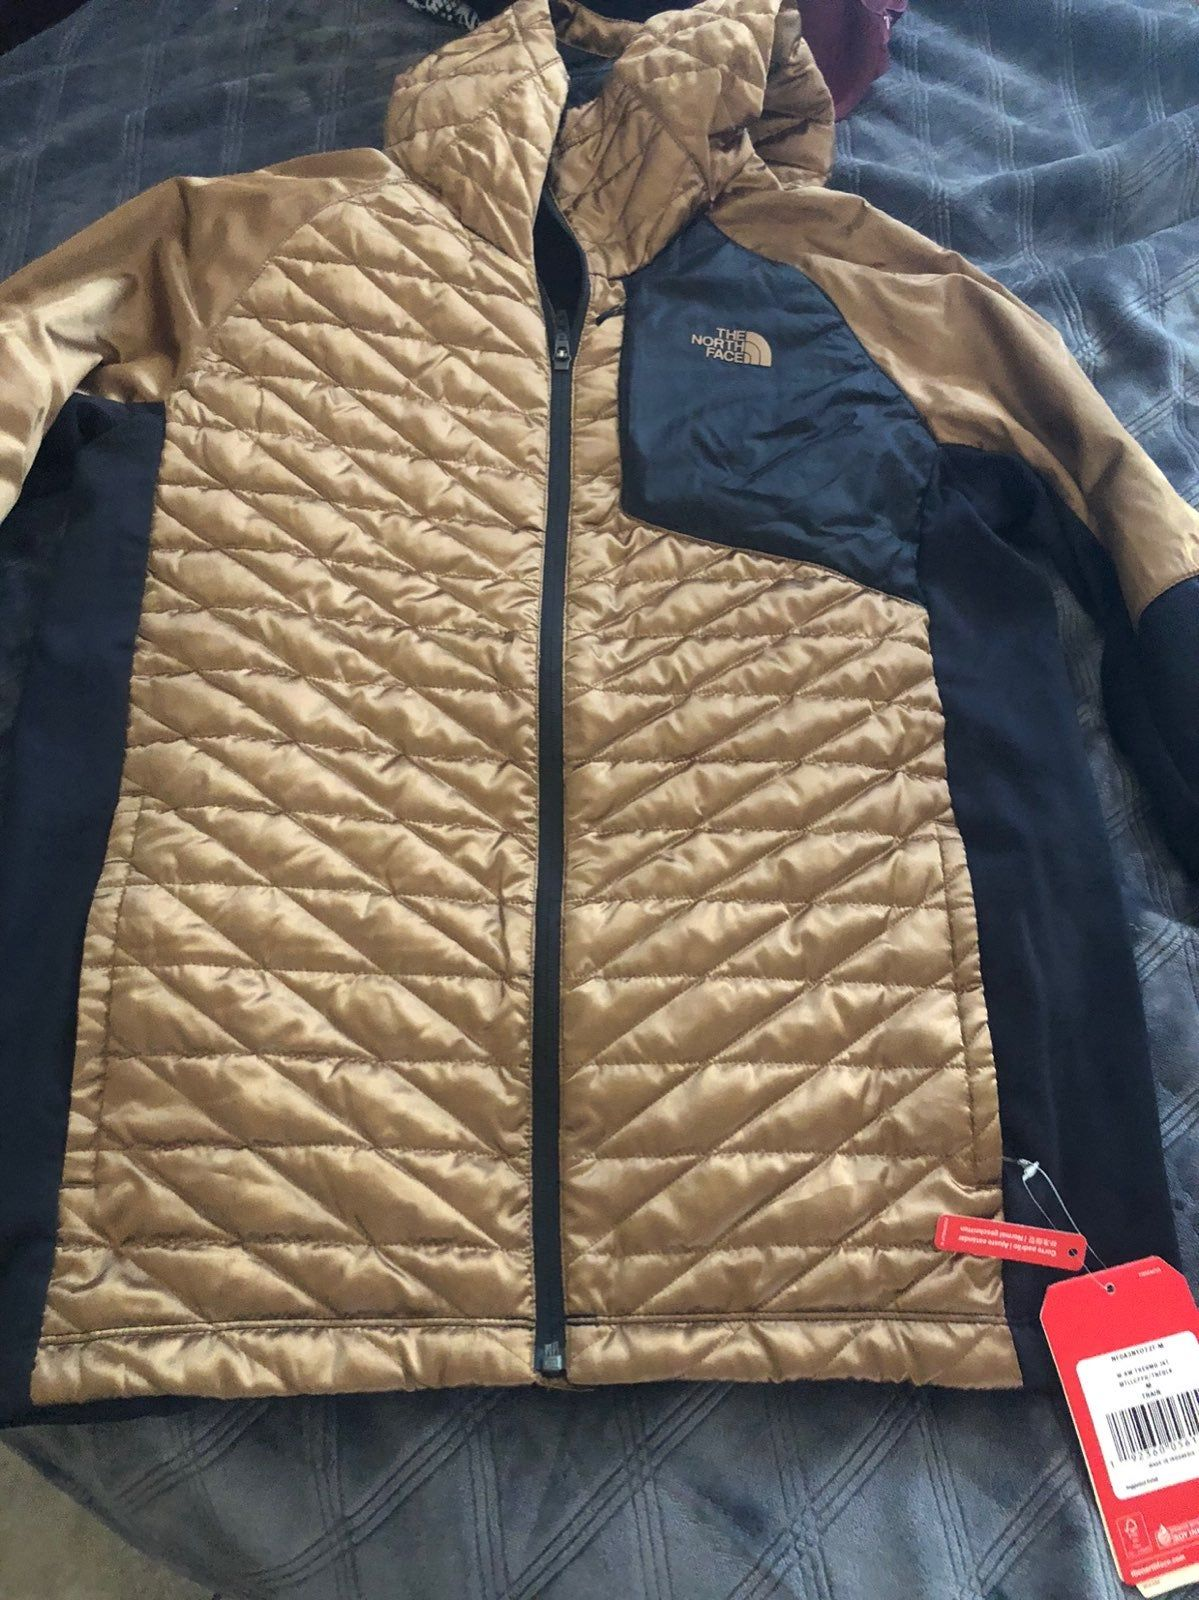 Brand New With Tags Size Medium North Face Jacket Jackets North Face Coat [ 1600 x 1199 Pixel ]